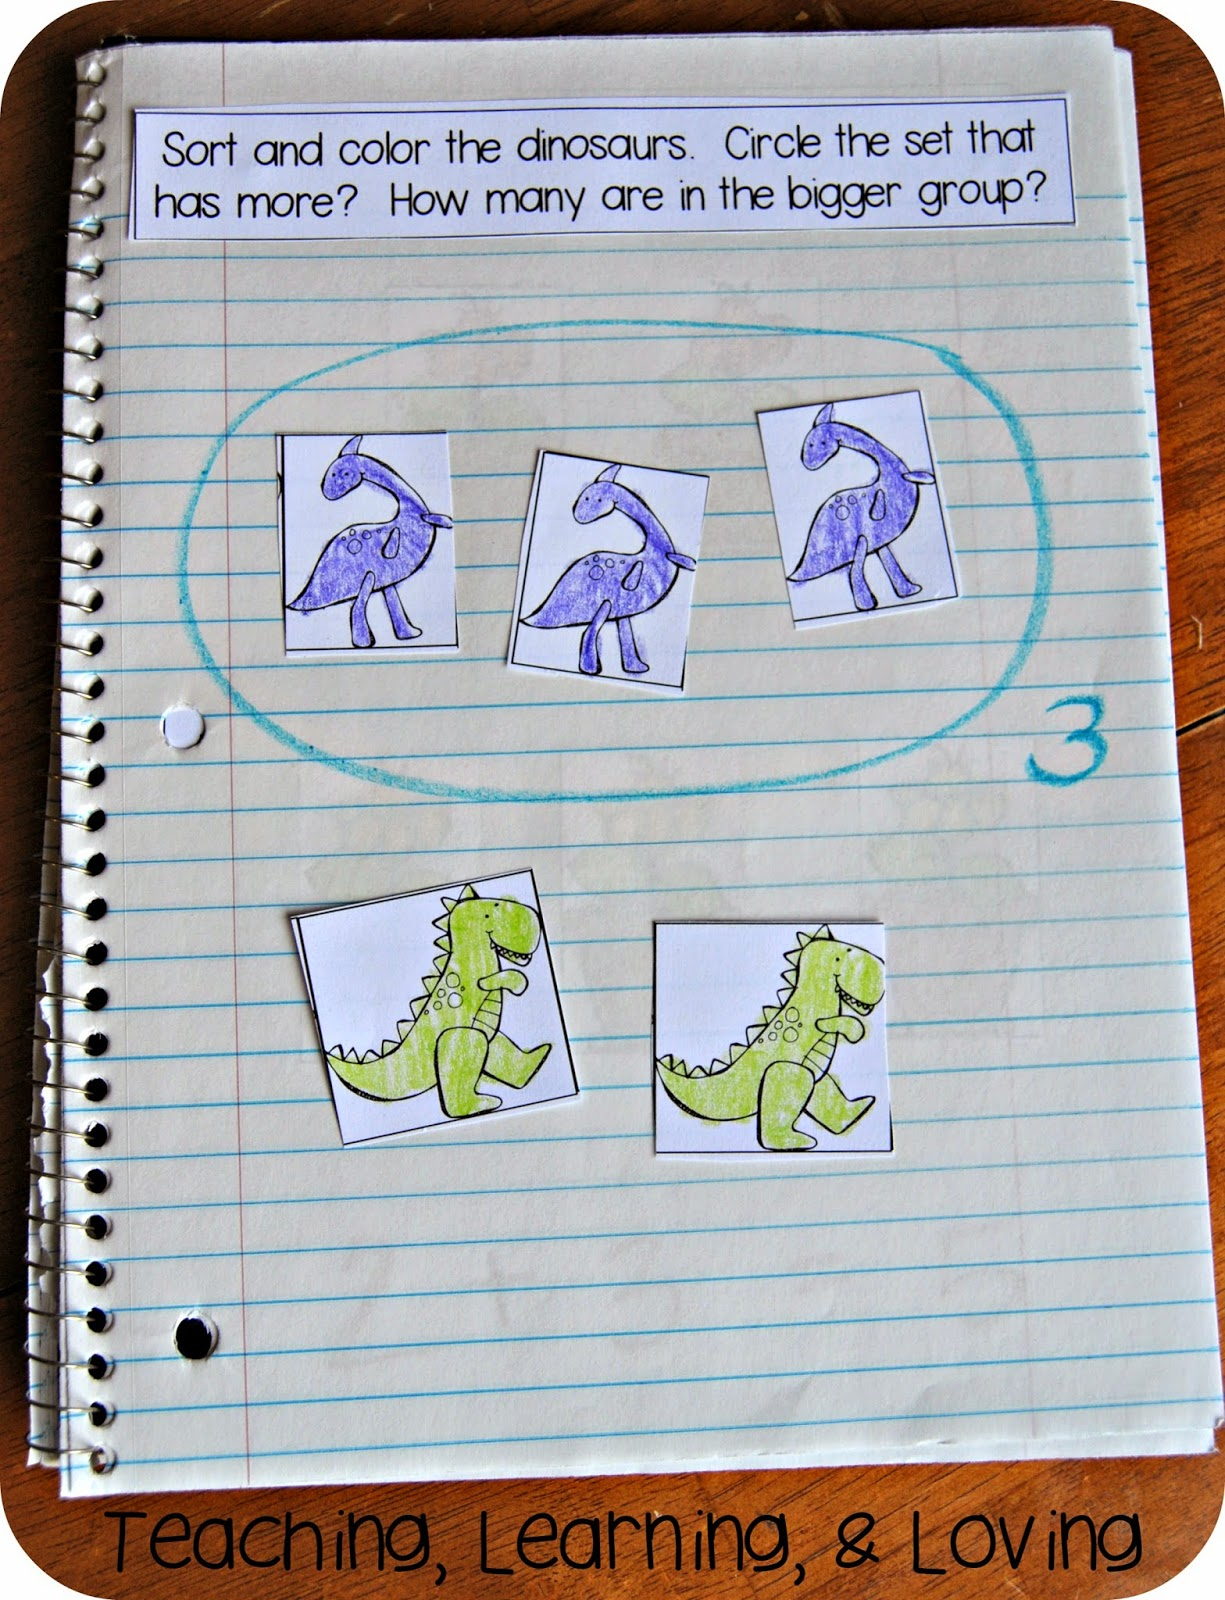 Colorful K Math Illustration - General Worksheet - cheapsilverjewelry.us